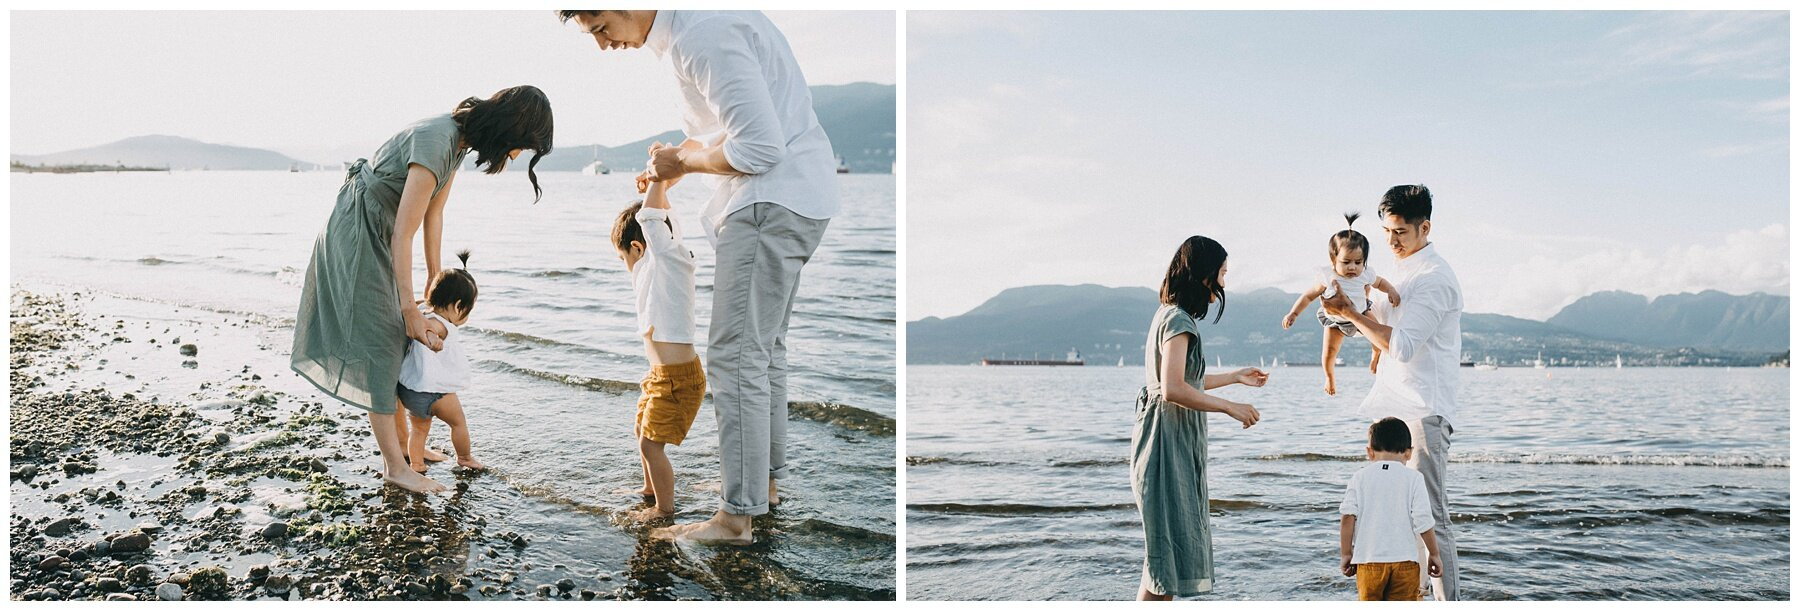 Vancouver Family Photographer || Jericho Beach Vancouver Family Photos_1291.jpg